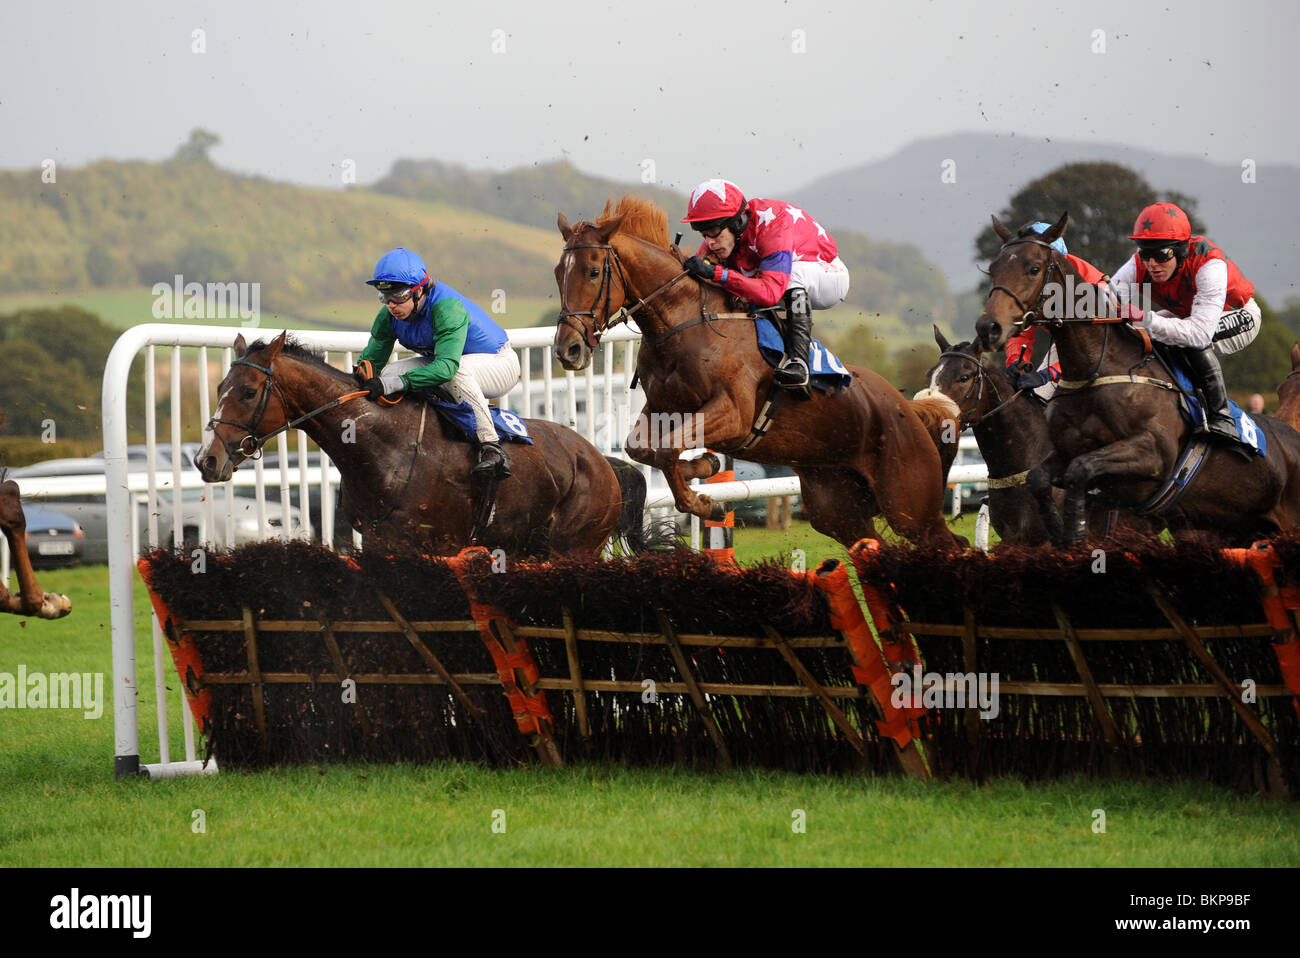 Plus de courses de chevaux de courses de haies à Ludlow dans le Shropshire Uk Photo Stock